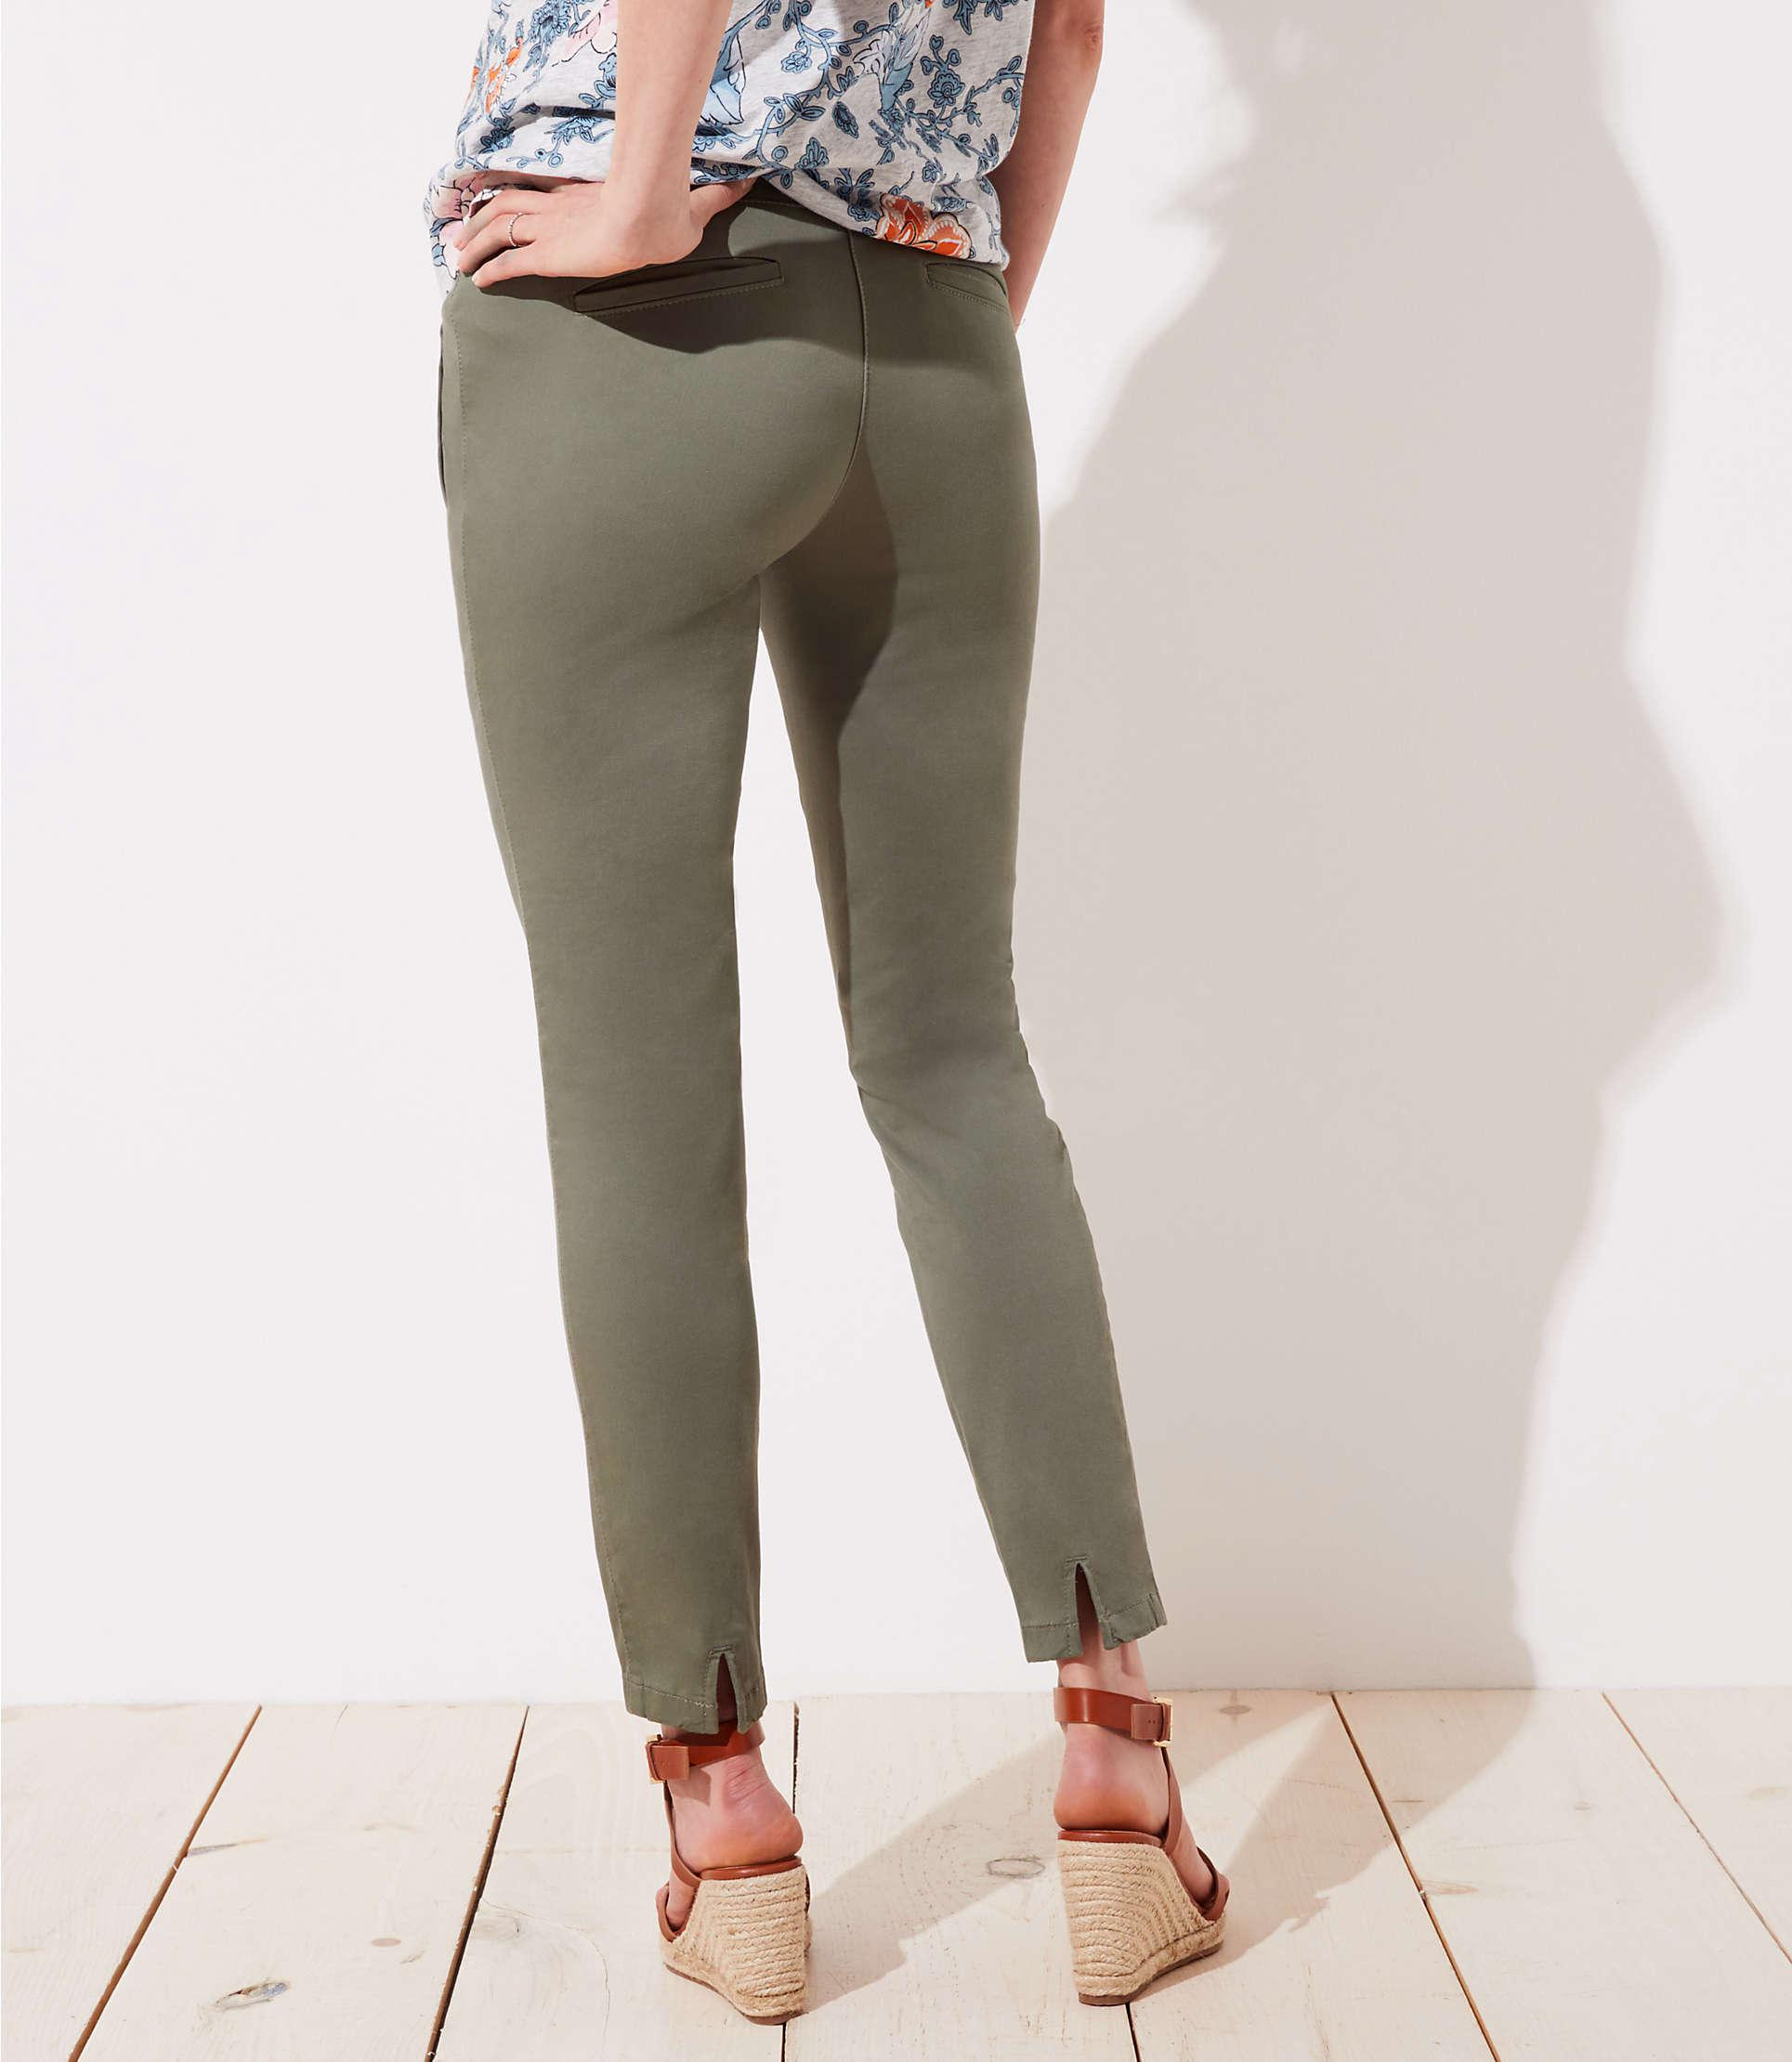 7af683f17140d LOFT - Multicolor Petite Maternity Skinny Zip Pocket Sateen Pants - Lyst.  View fullscreen